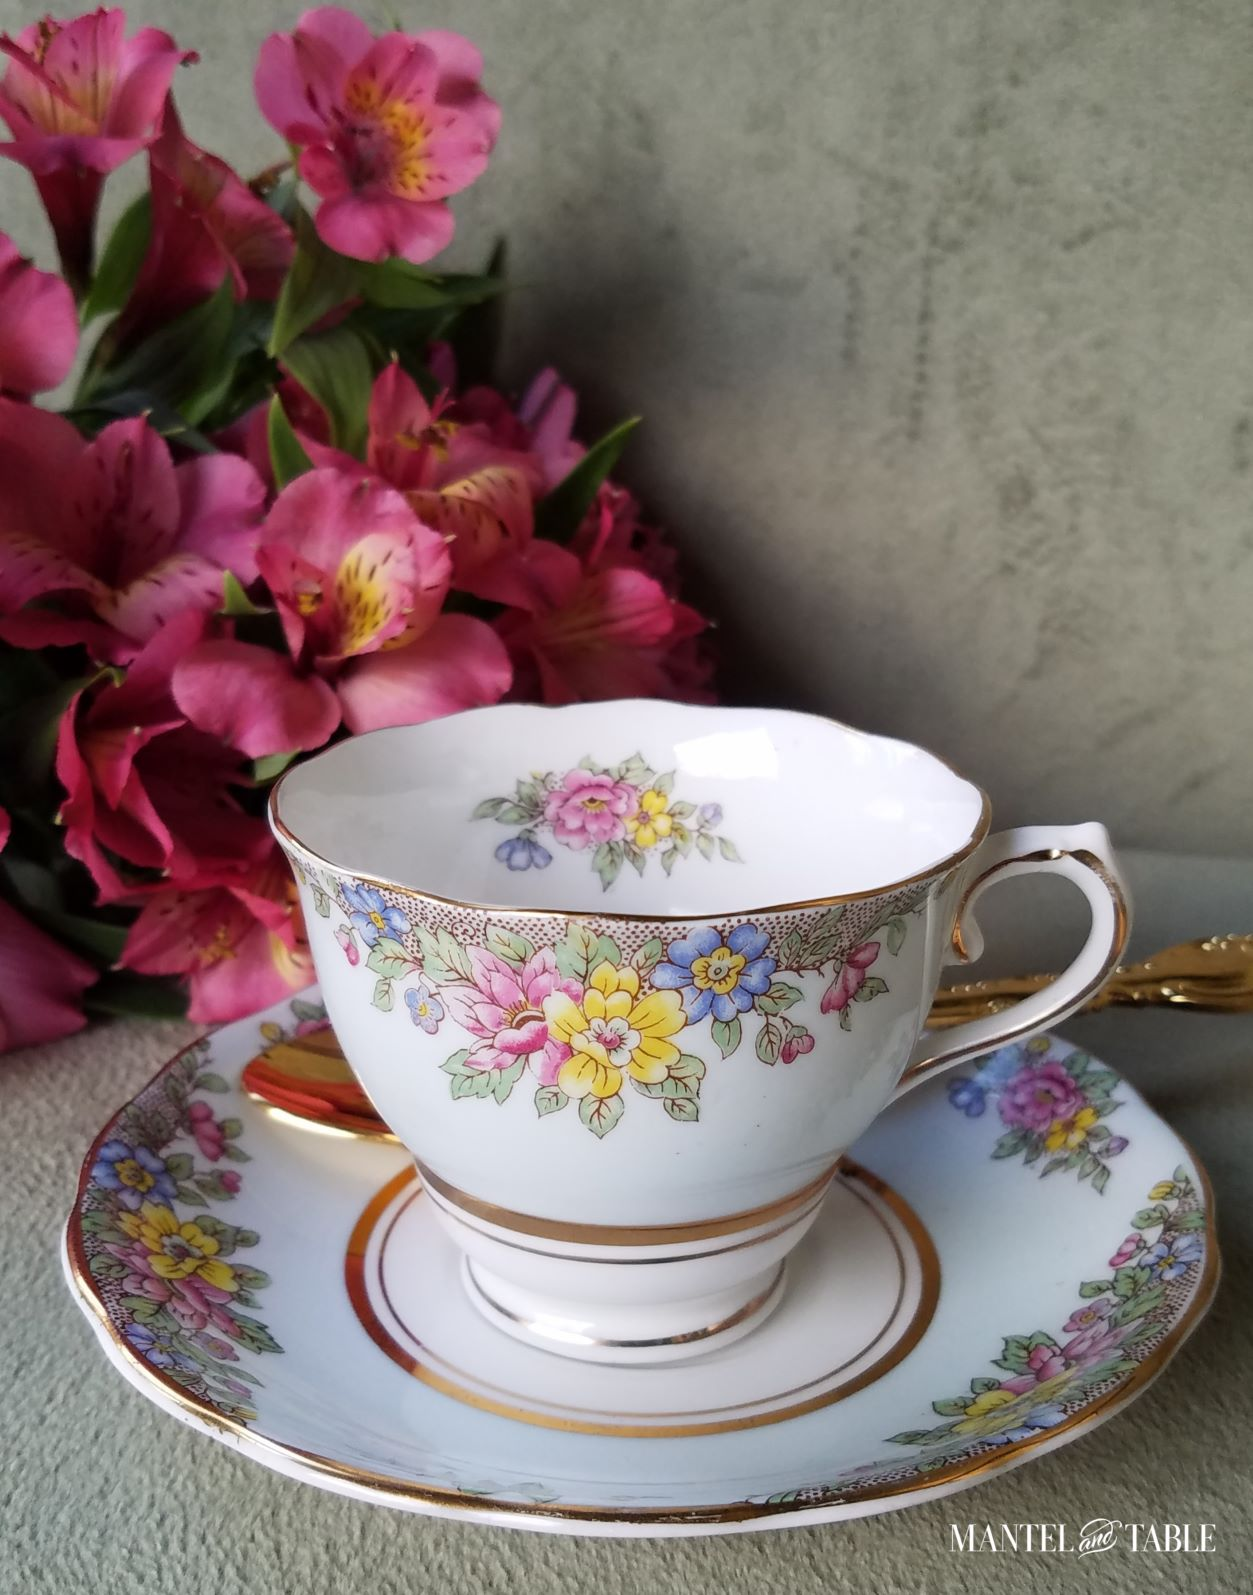 Blue flowered teacup and saucer with gold spoon